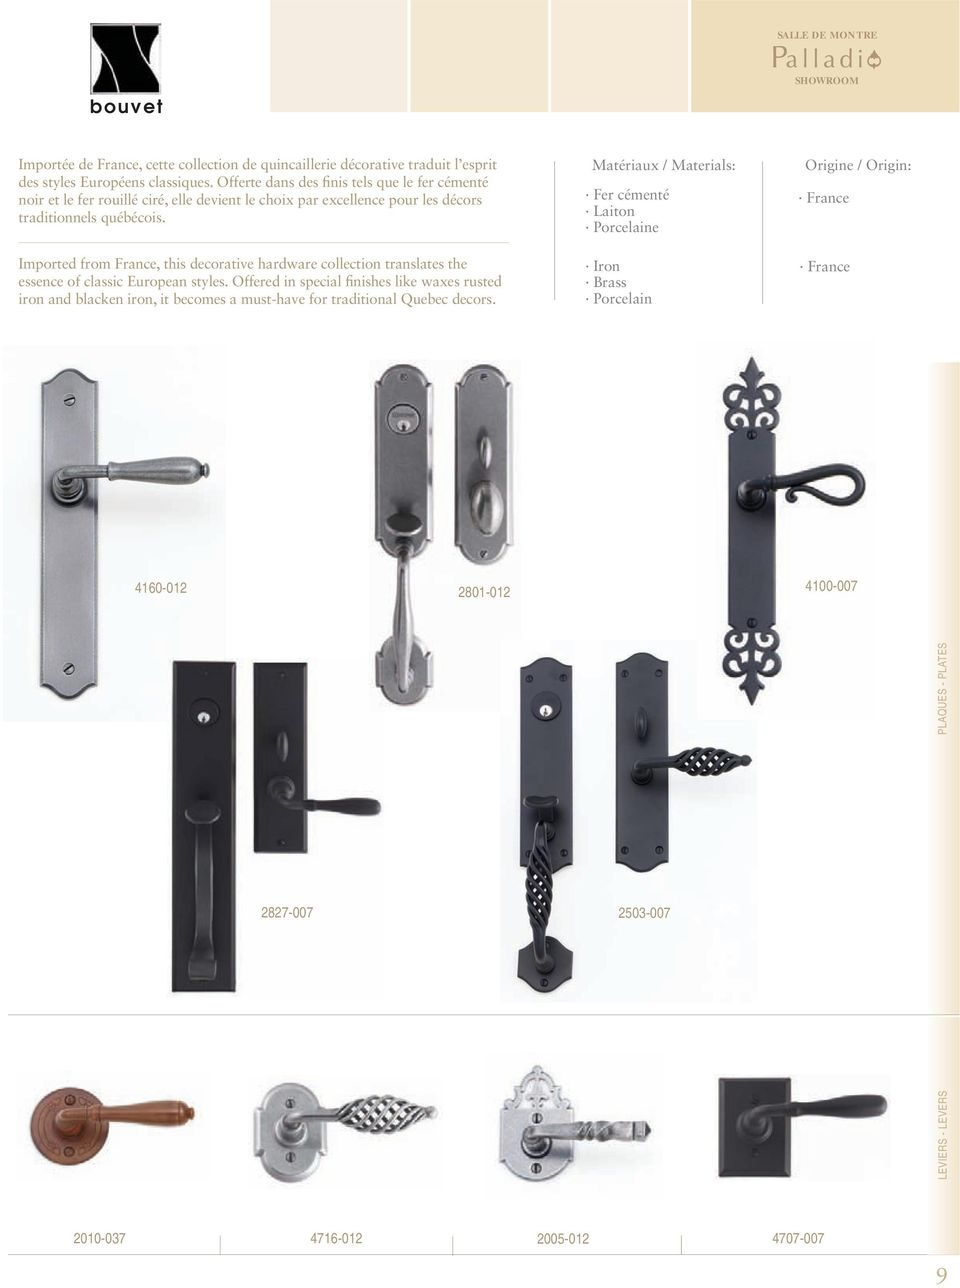 Imported from France, this decorative hardware collection translates the essence of classic European styles.